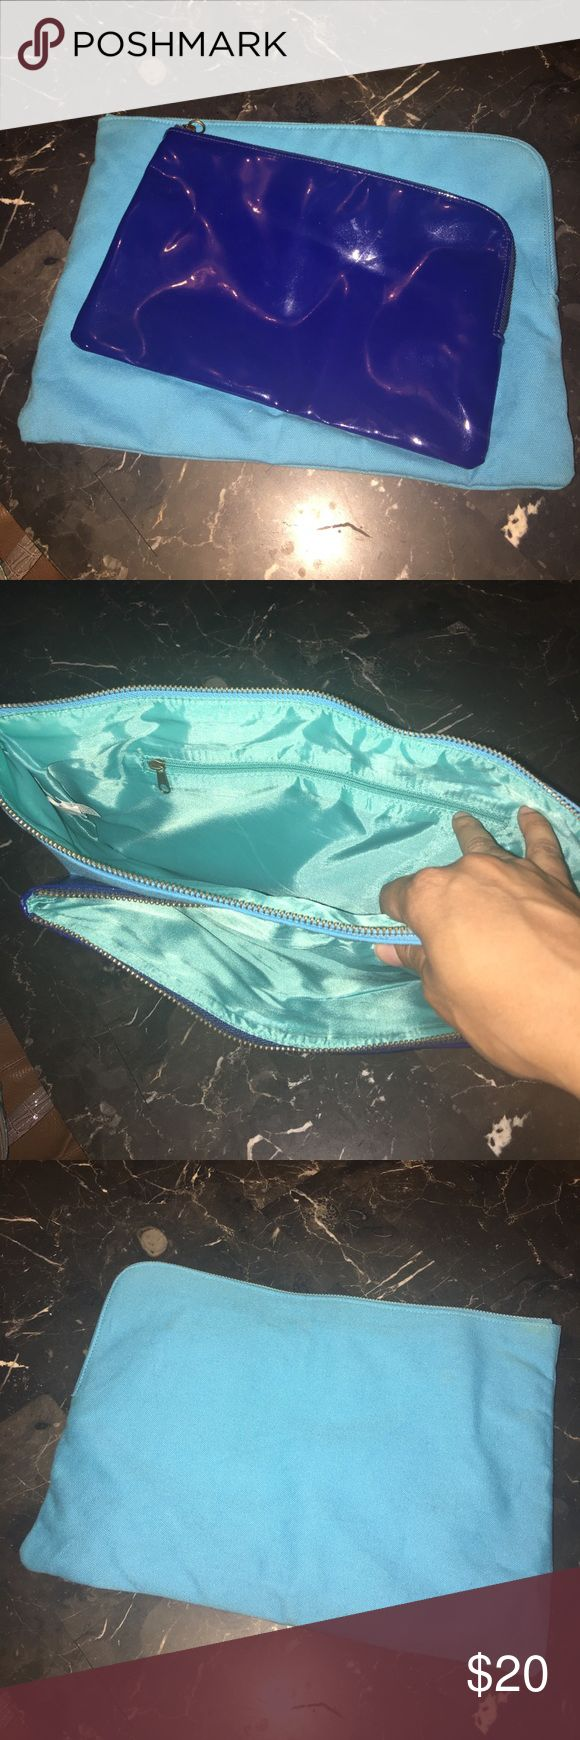 Connected clutch bags!!!! Turquoise and royal blue attached clutch bags ... worn once!! Small minor stains ....hardly visible!!! Feel free to make an offer!!! Bags Clutches & Wristlets